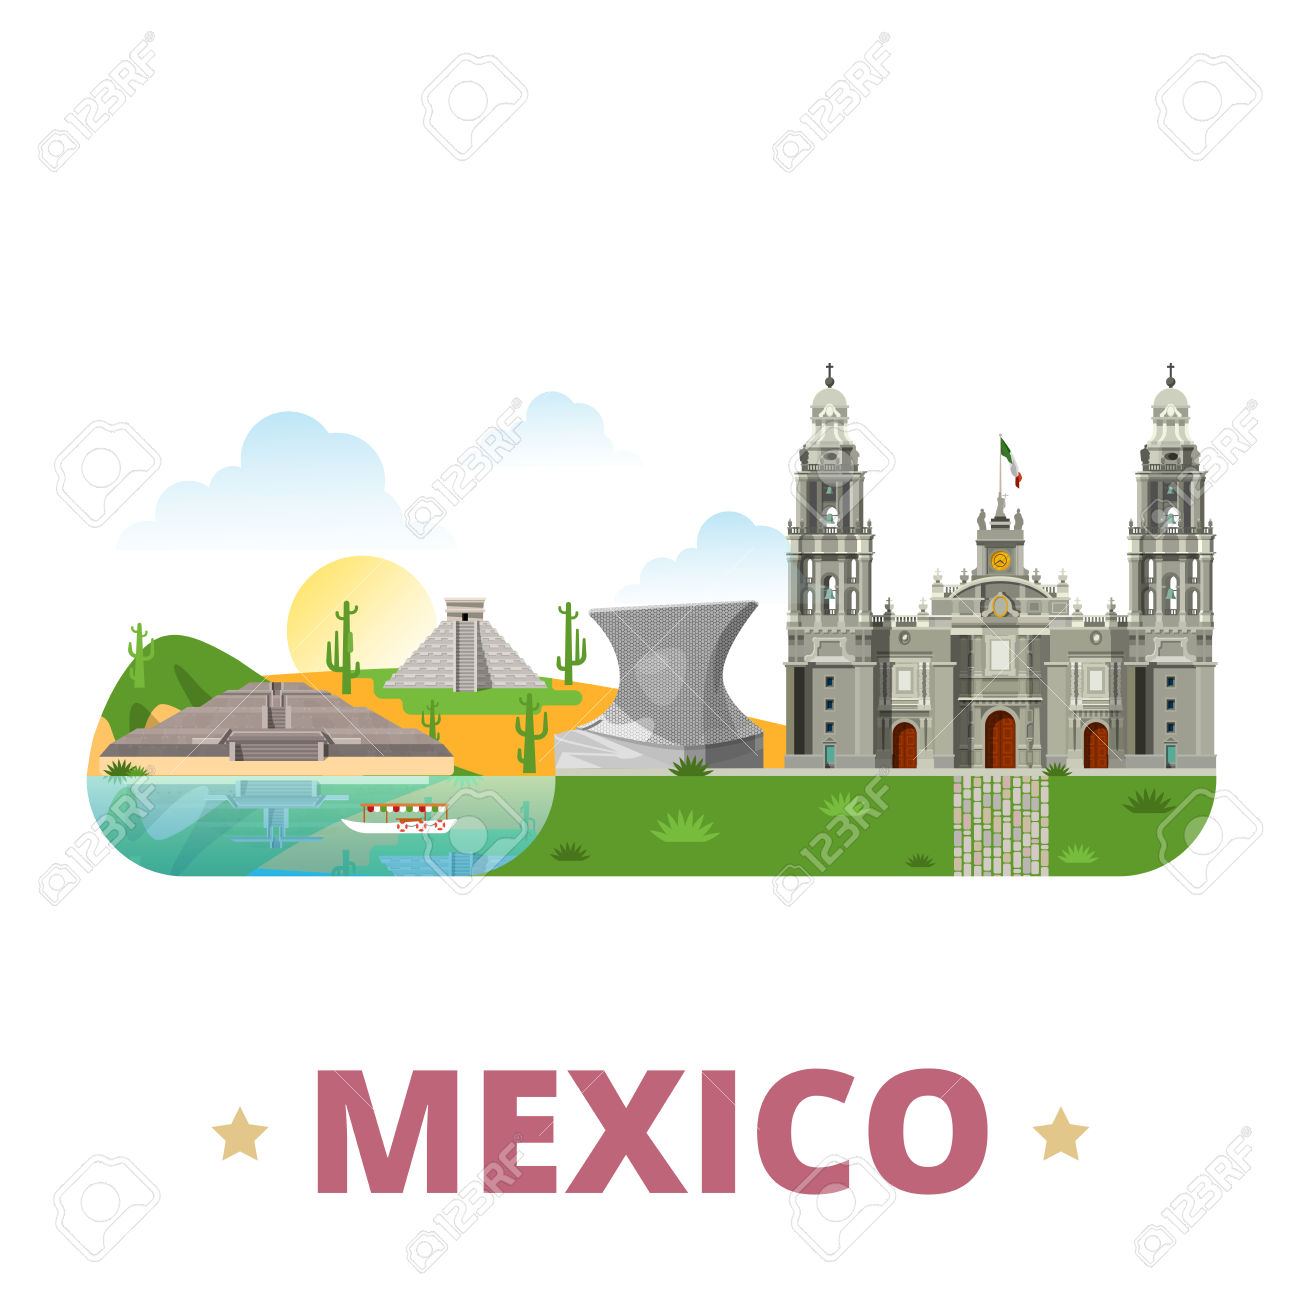 Mexico Country Badge Fridge Magnet Design Template. Flat Cartoon.